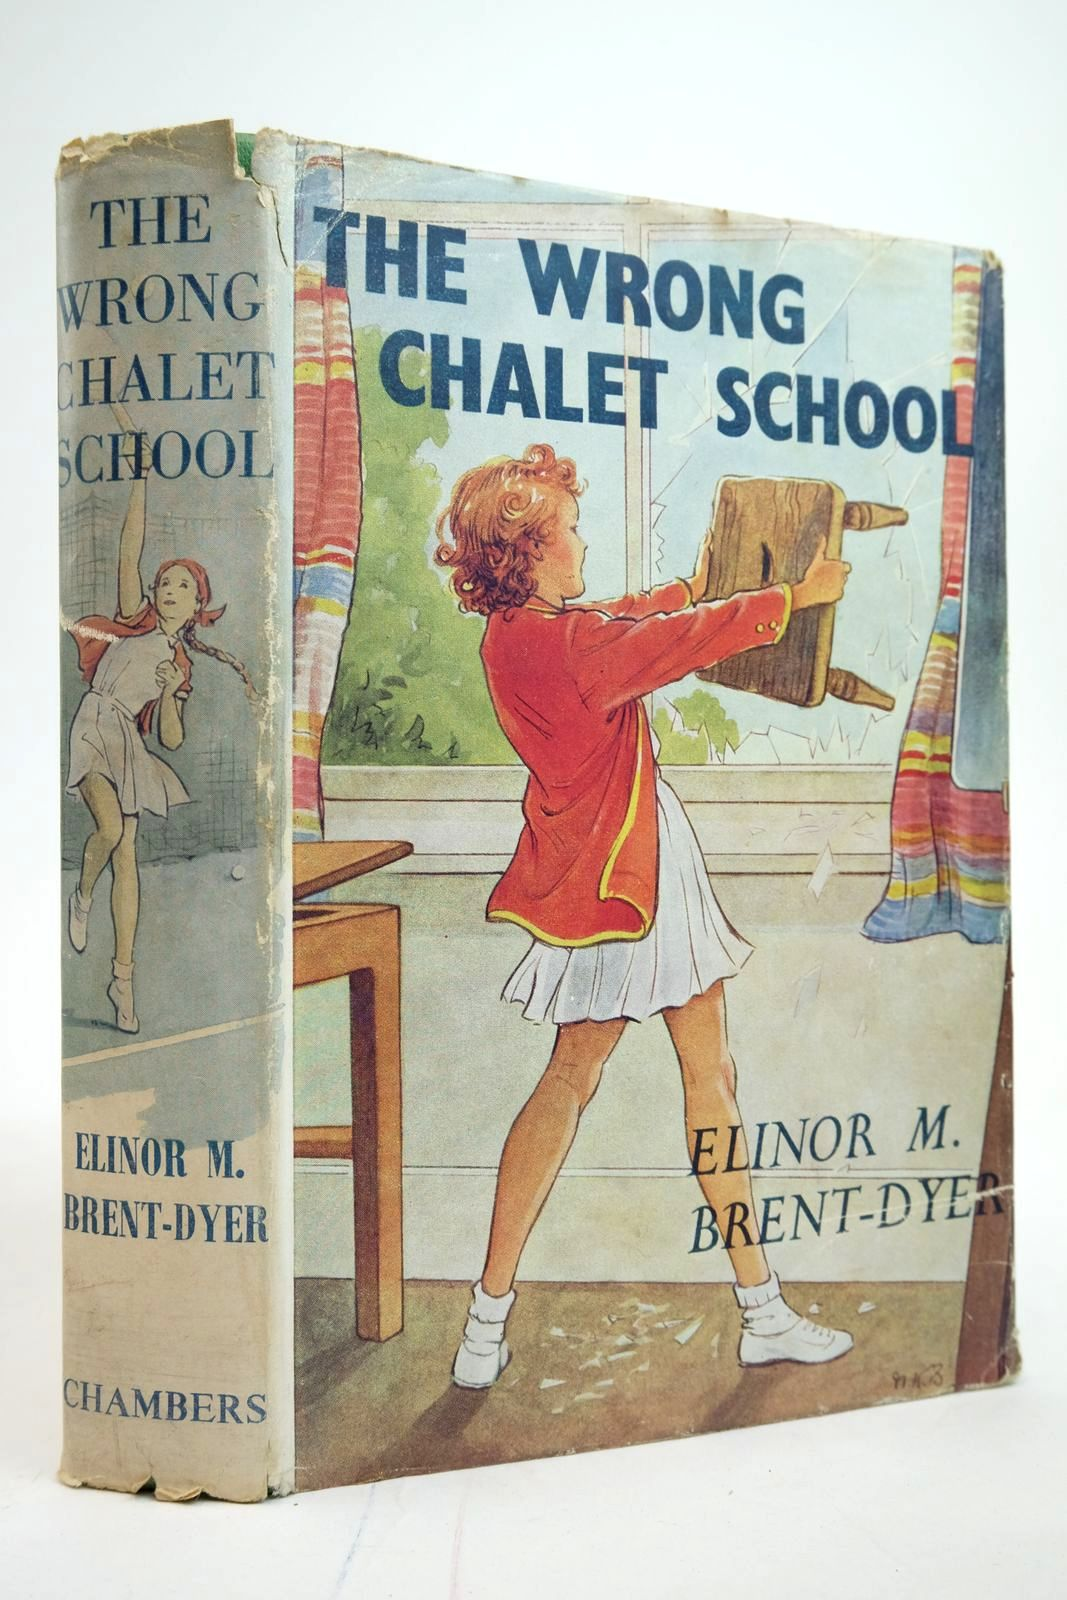 Photo of THE WRONG CHALET SCHOOL written by Brent-Dyer, Elinor M. illustrated by Brisley, Nina K. published by W. & R. Chambers Limited (STOCK CODE: 2135224)  for sale by Stella & Rose's Books